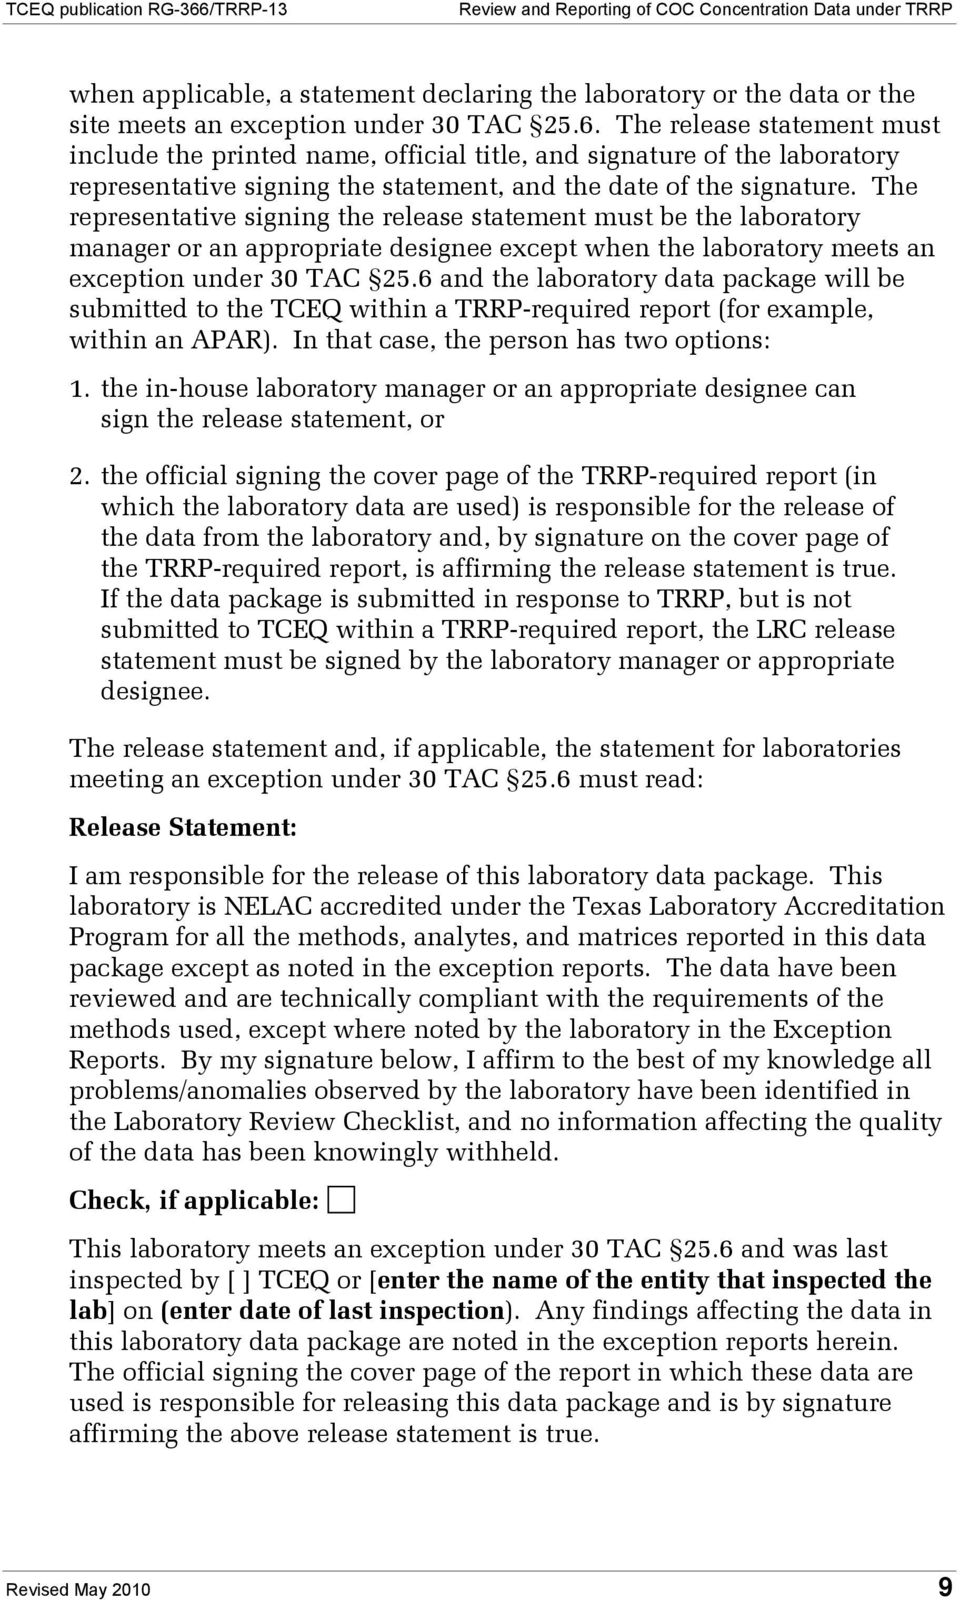 The representative signing the release statement must be the laboratory manager or an appropriate designee except when the laboratory meets an exception under 30 TAC 25.